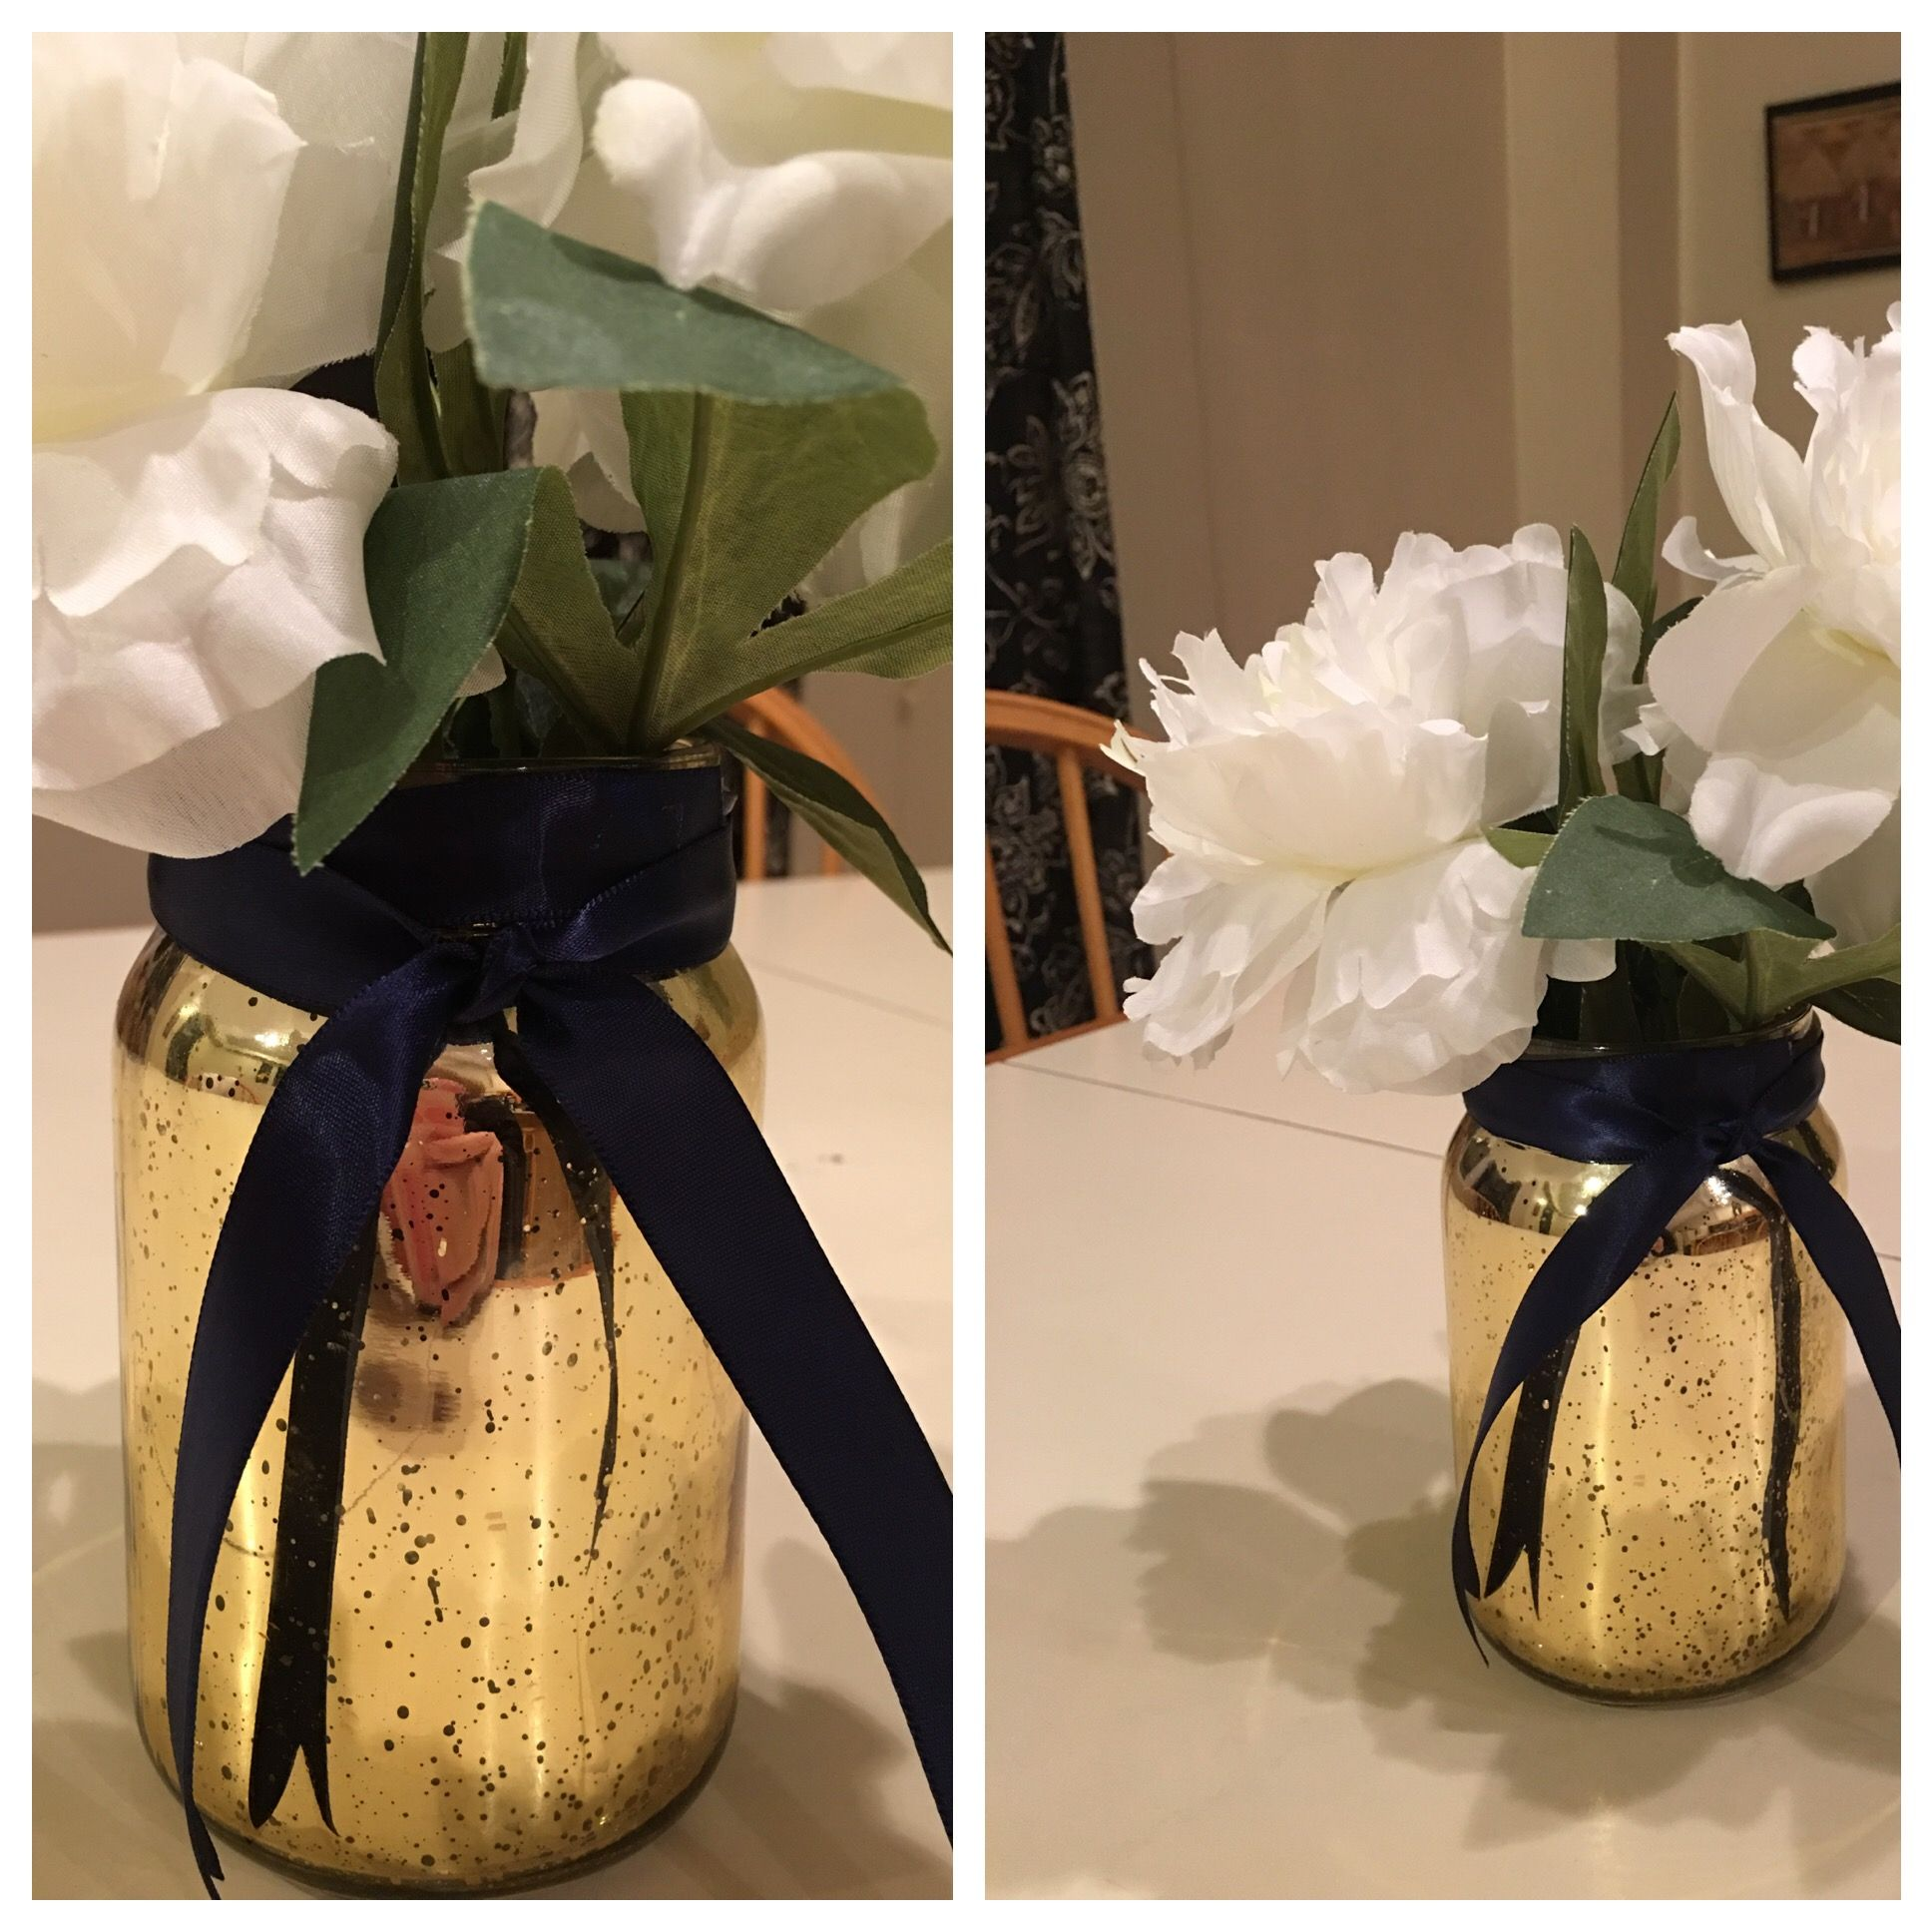 White peonies from Michaels with a couple of drops of cherry vanilla essential oil.   Mercury glass jars in gold from Joanns.... battery operated votives make them glow.  Navy ribbon with double sided tape to hold it on the rim